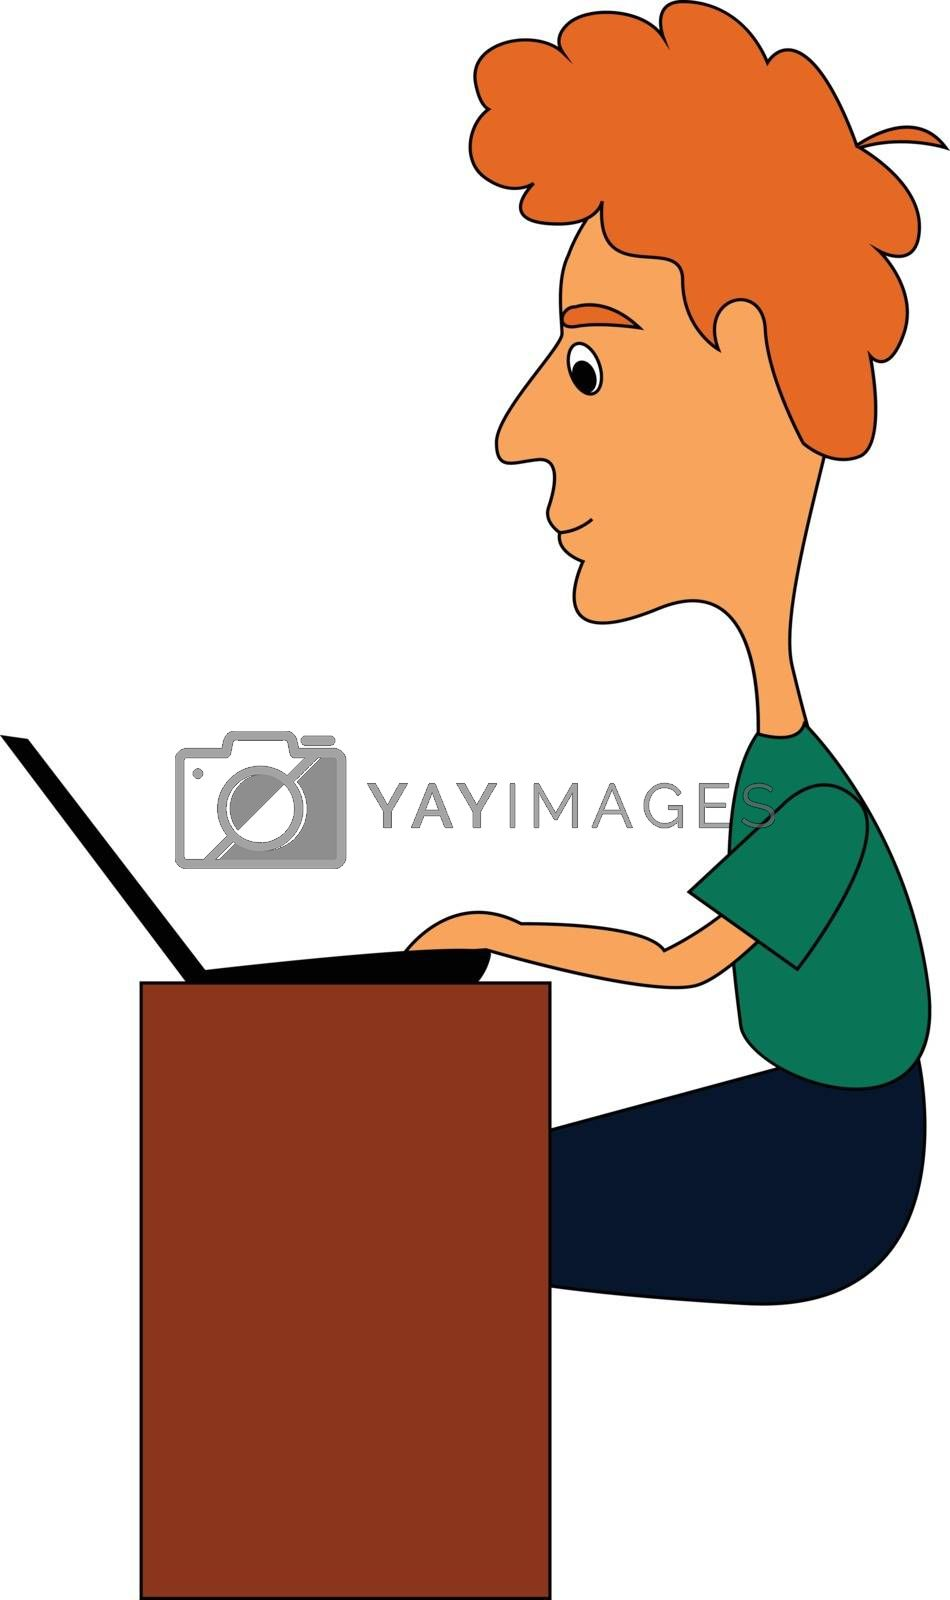 Royalty free image of Clipart of an officer at work in his office hours before the lap by Morphart